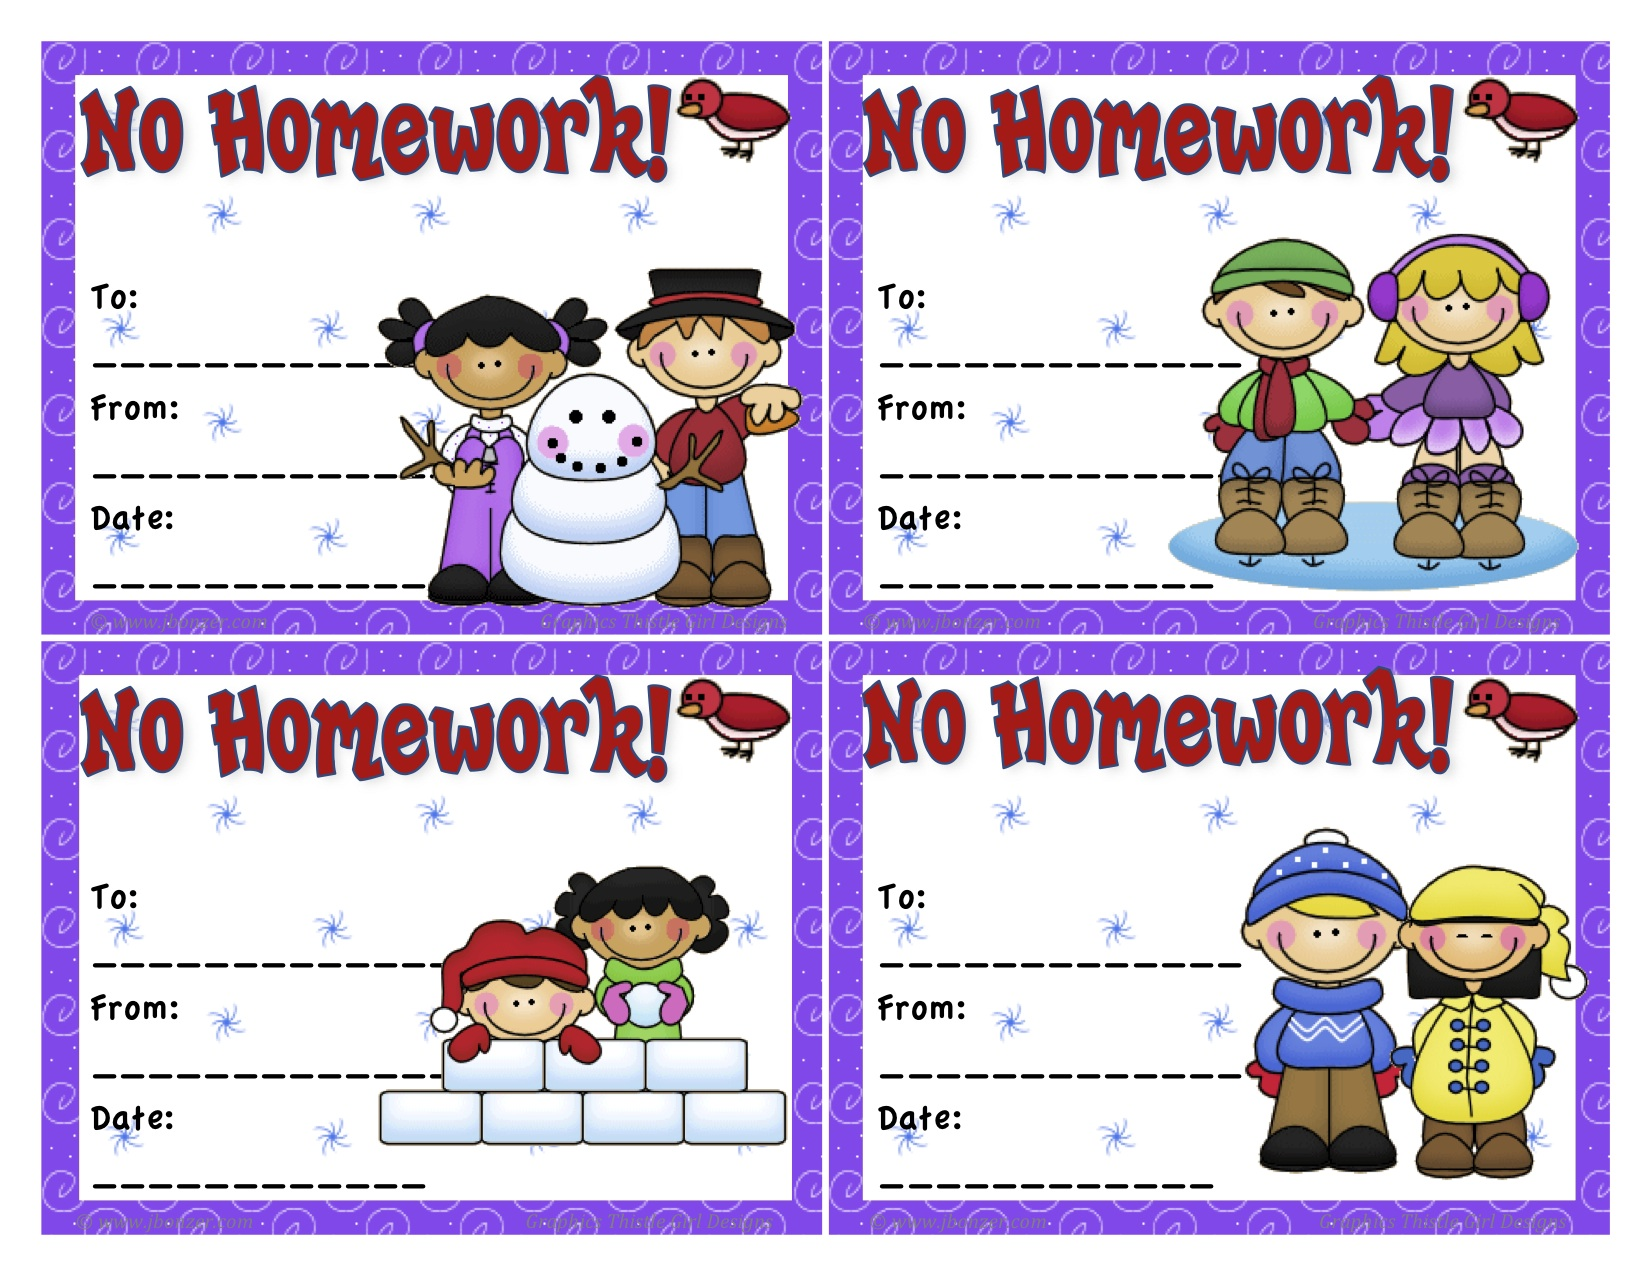 Vowel Team Ea From Rochel Koval On Teachersnotebook 31 Pages Vowel Team Ea Can Make The